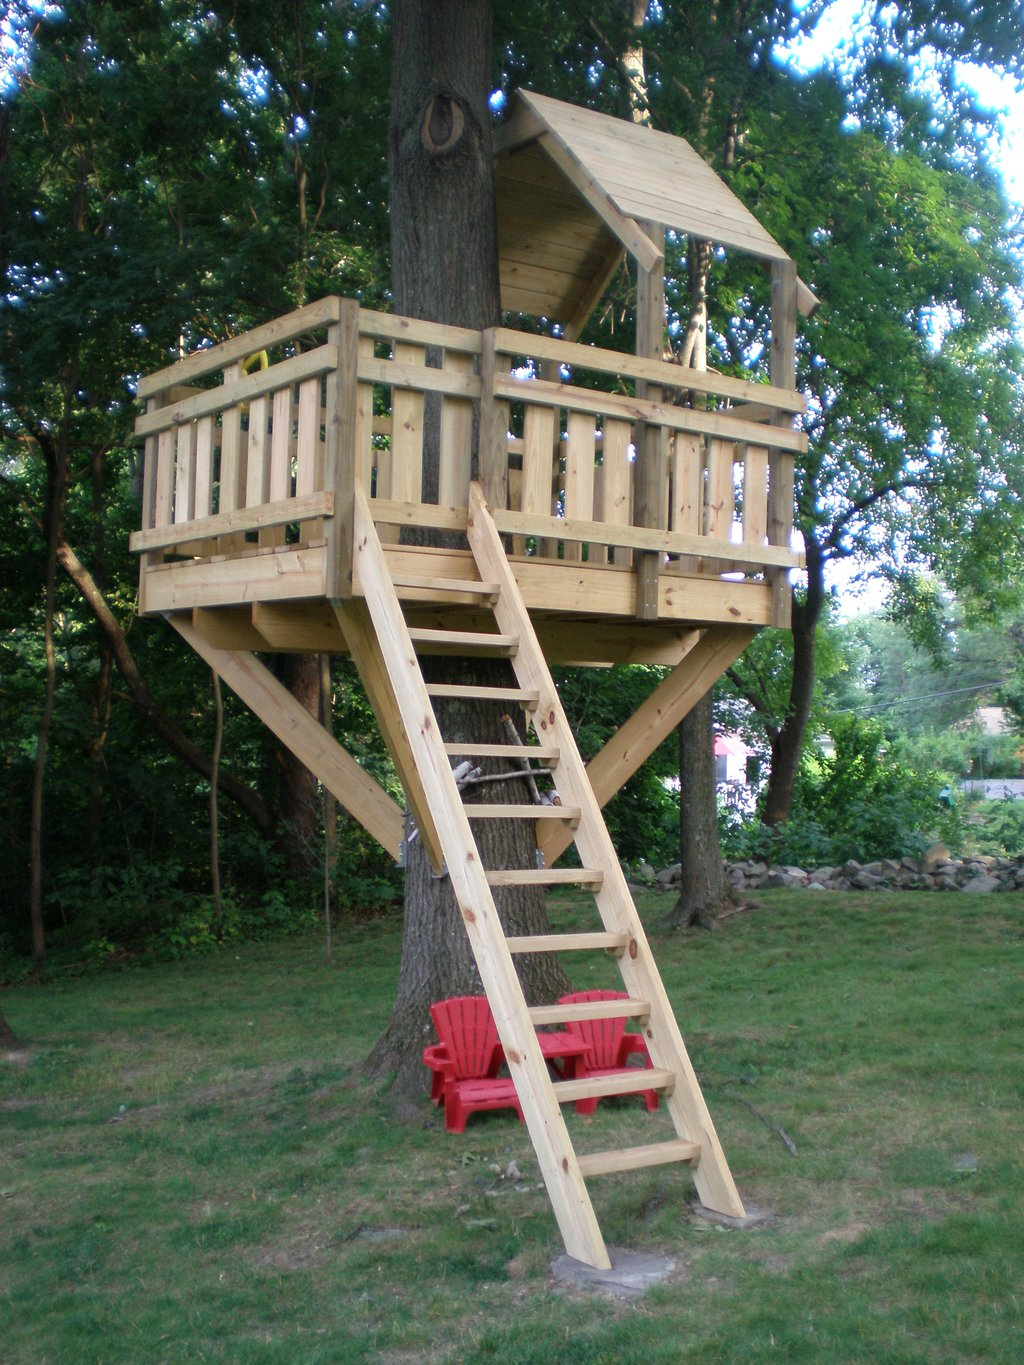 Tree Fort Ladder Gate Roof Finale Village Custom Durability Of Kids Wooden Playhouse